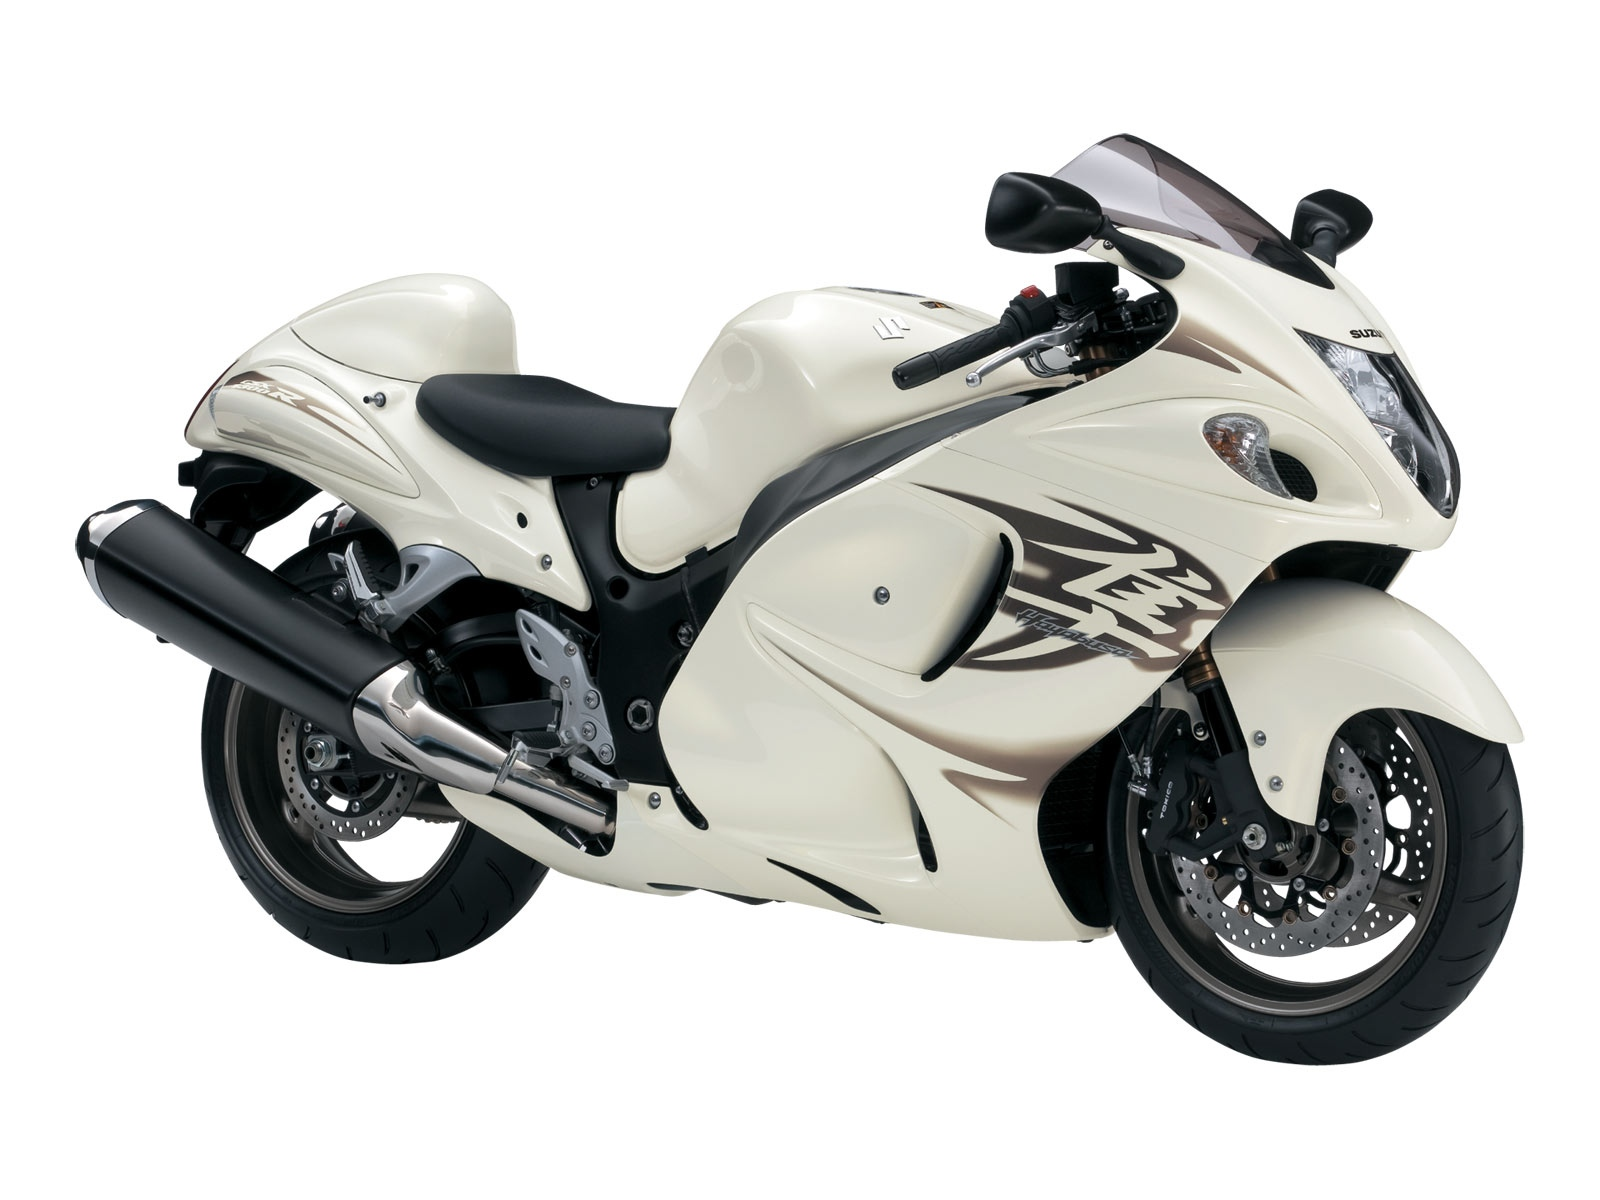 http://3.bp.blogspot.com/-Ry6QkEvrtic/TXSzjqM-U7I/AAAAAAAAGJ0/VDFdMhBGNJU/s1600/suzuki-hayabusa-latest-wallpapers-1600-1920-1280-1028-2011-2010-2009-2500-models-sexy-girls-super-bike-sexy-bike-topless-girls-on-bike-widescreen-wallpapers-hd-04.jpg